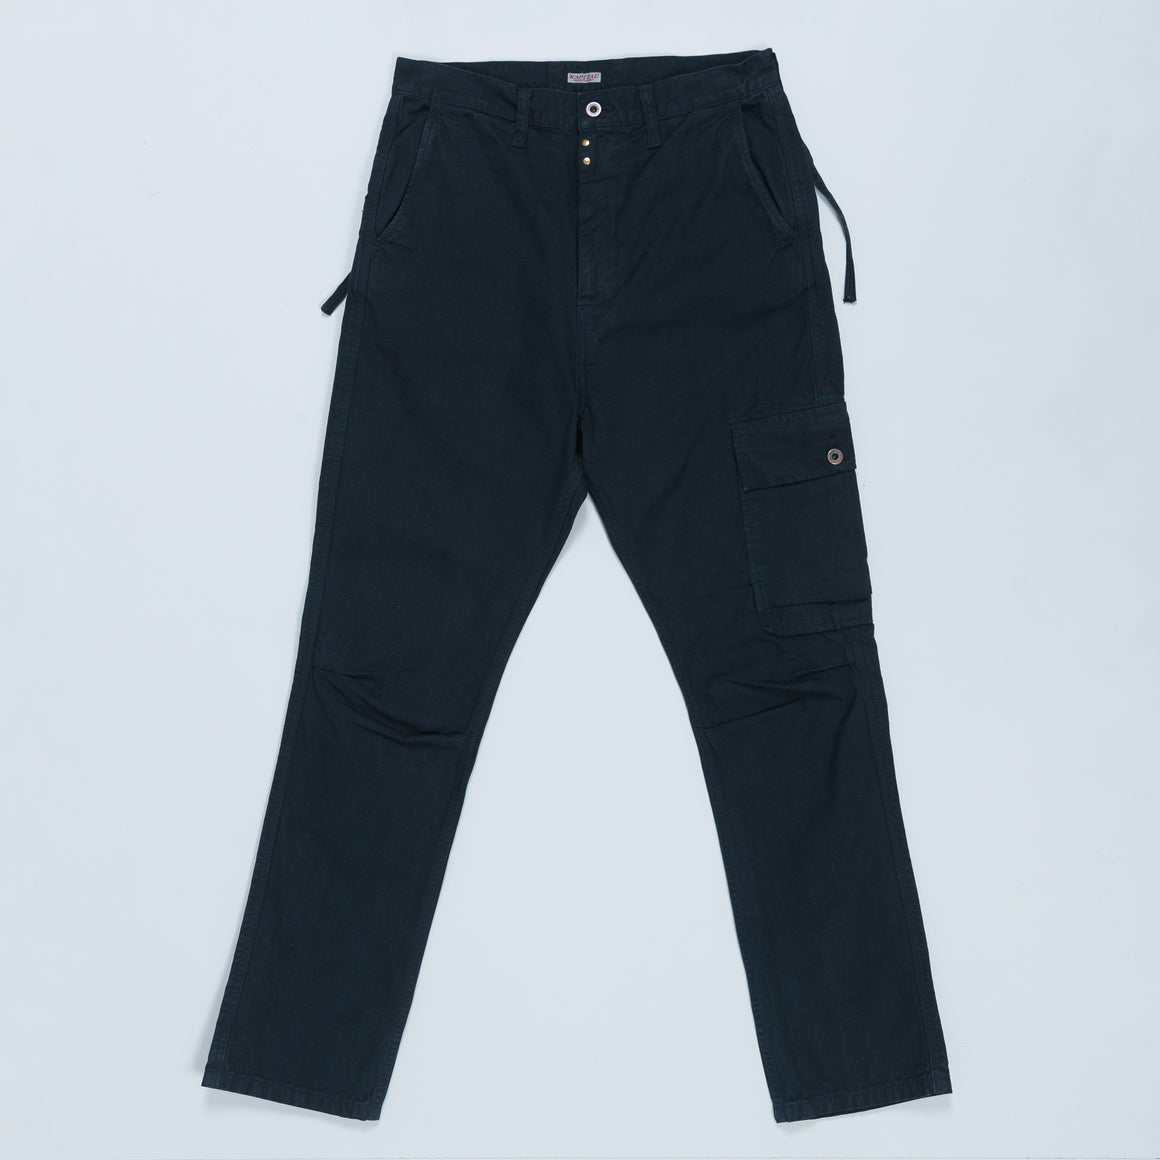 Light Canvas Ringoman Cargo Pants - Black - Up There